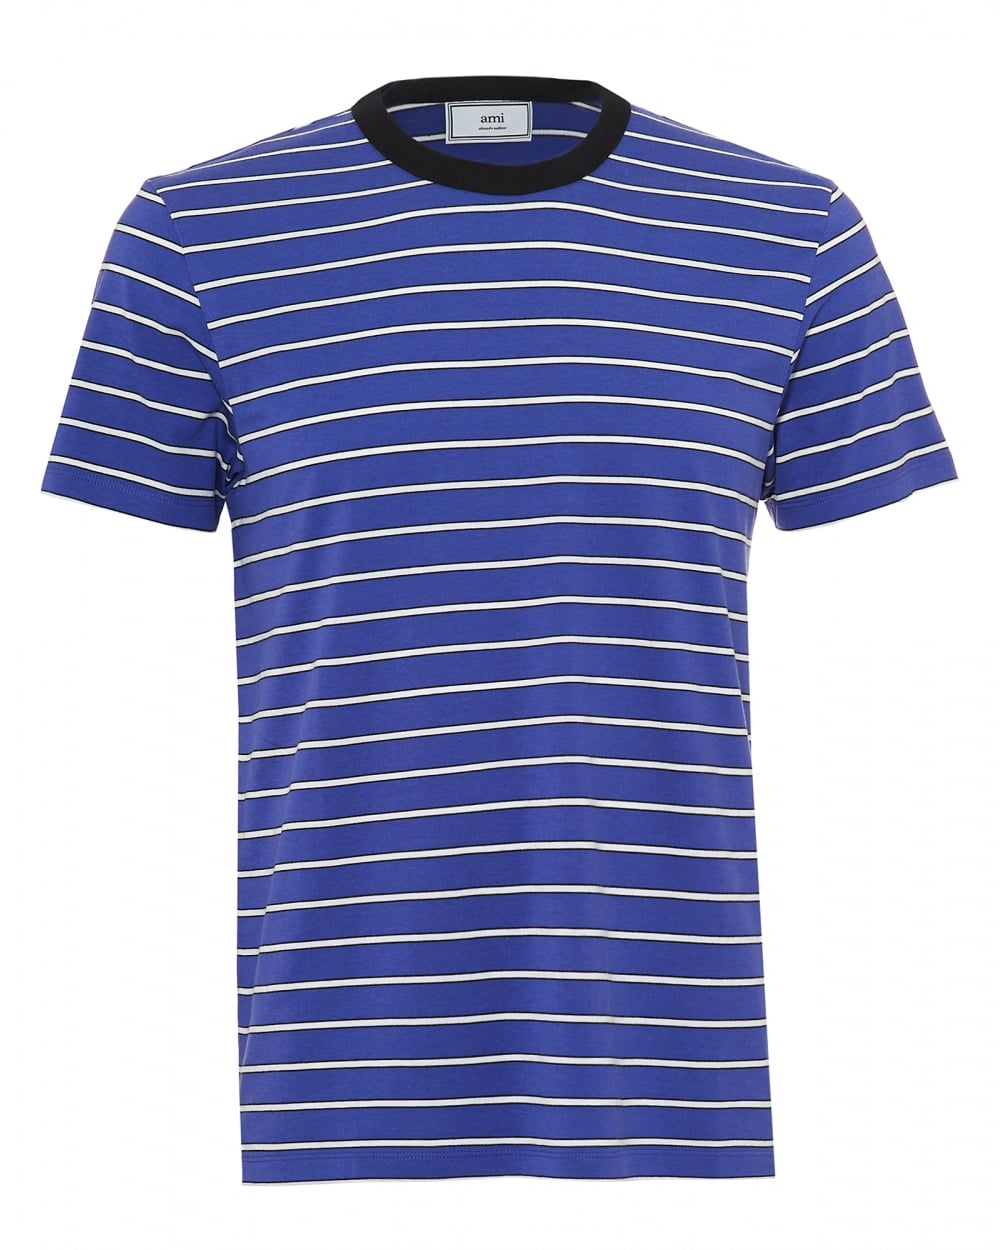 Ami mens horizontal white striped t shirt regular fit for Purple and black striped t shirt